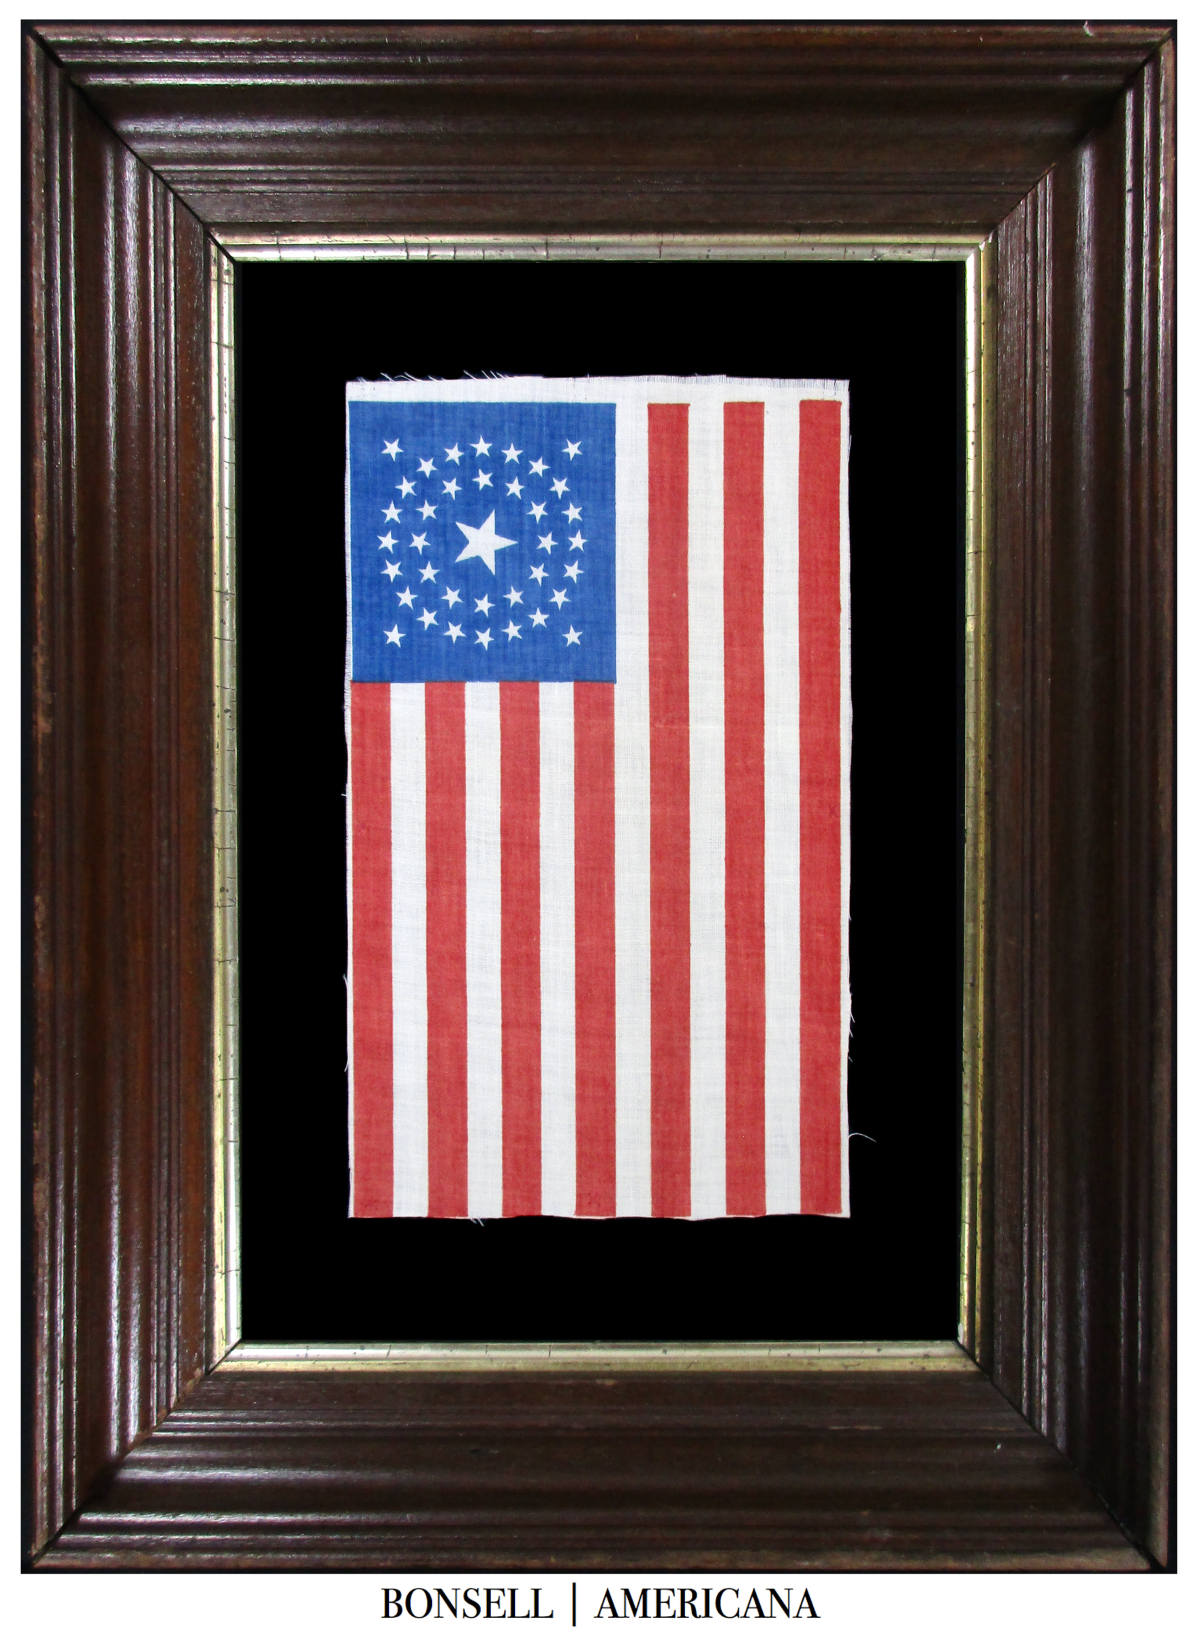 37 Star Antique American Flag with a Medallion Star Pattern